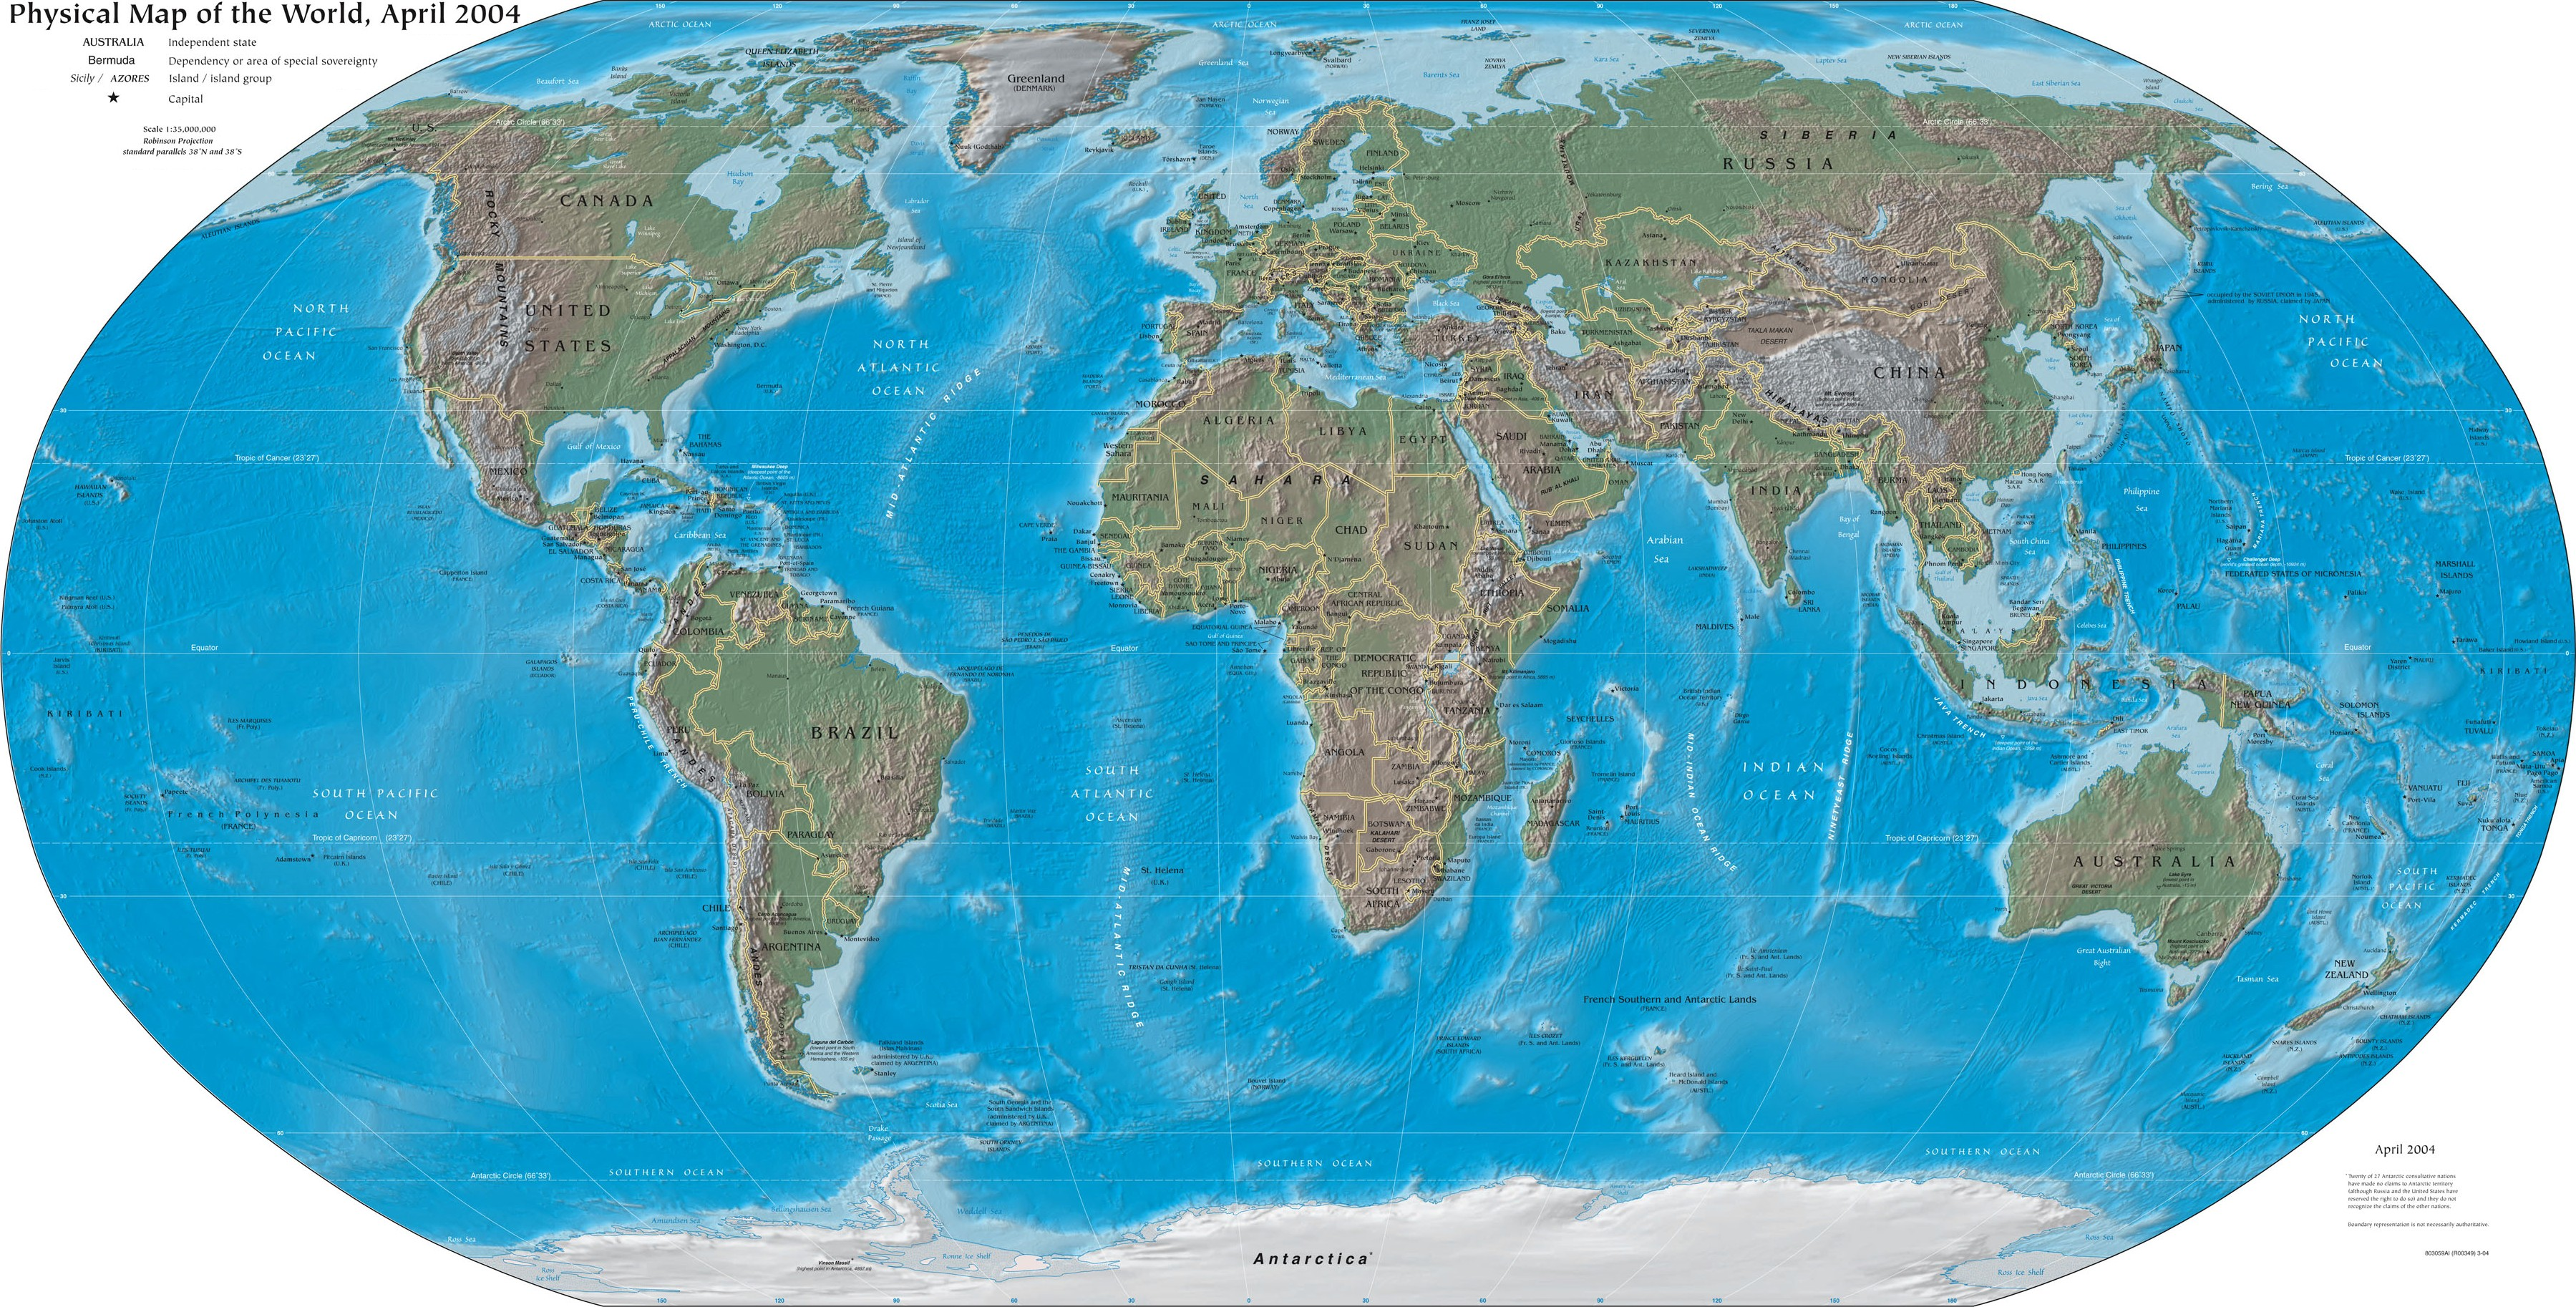 World Geography Materials John M Wiley - World geography